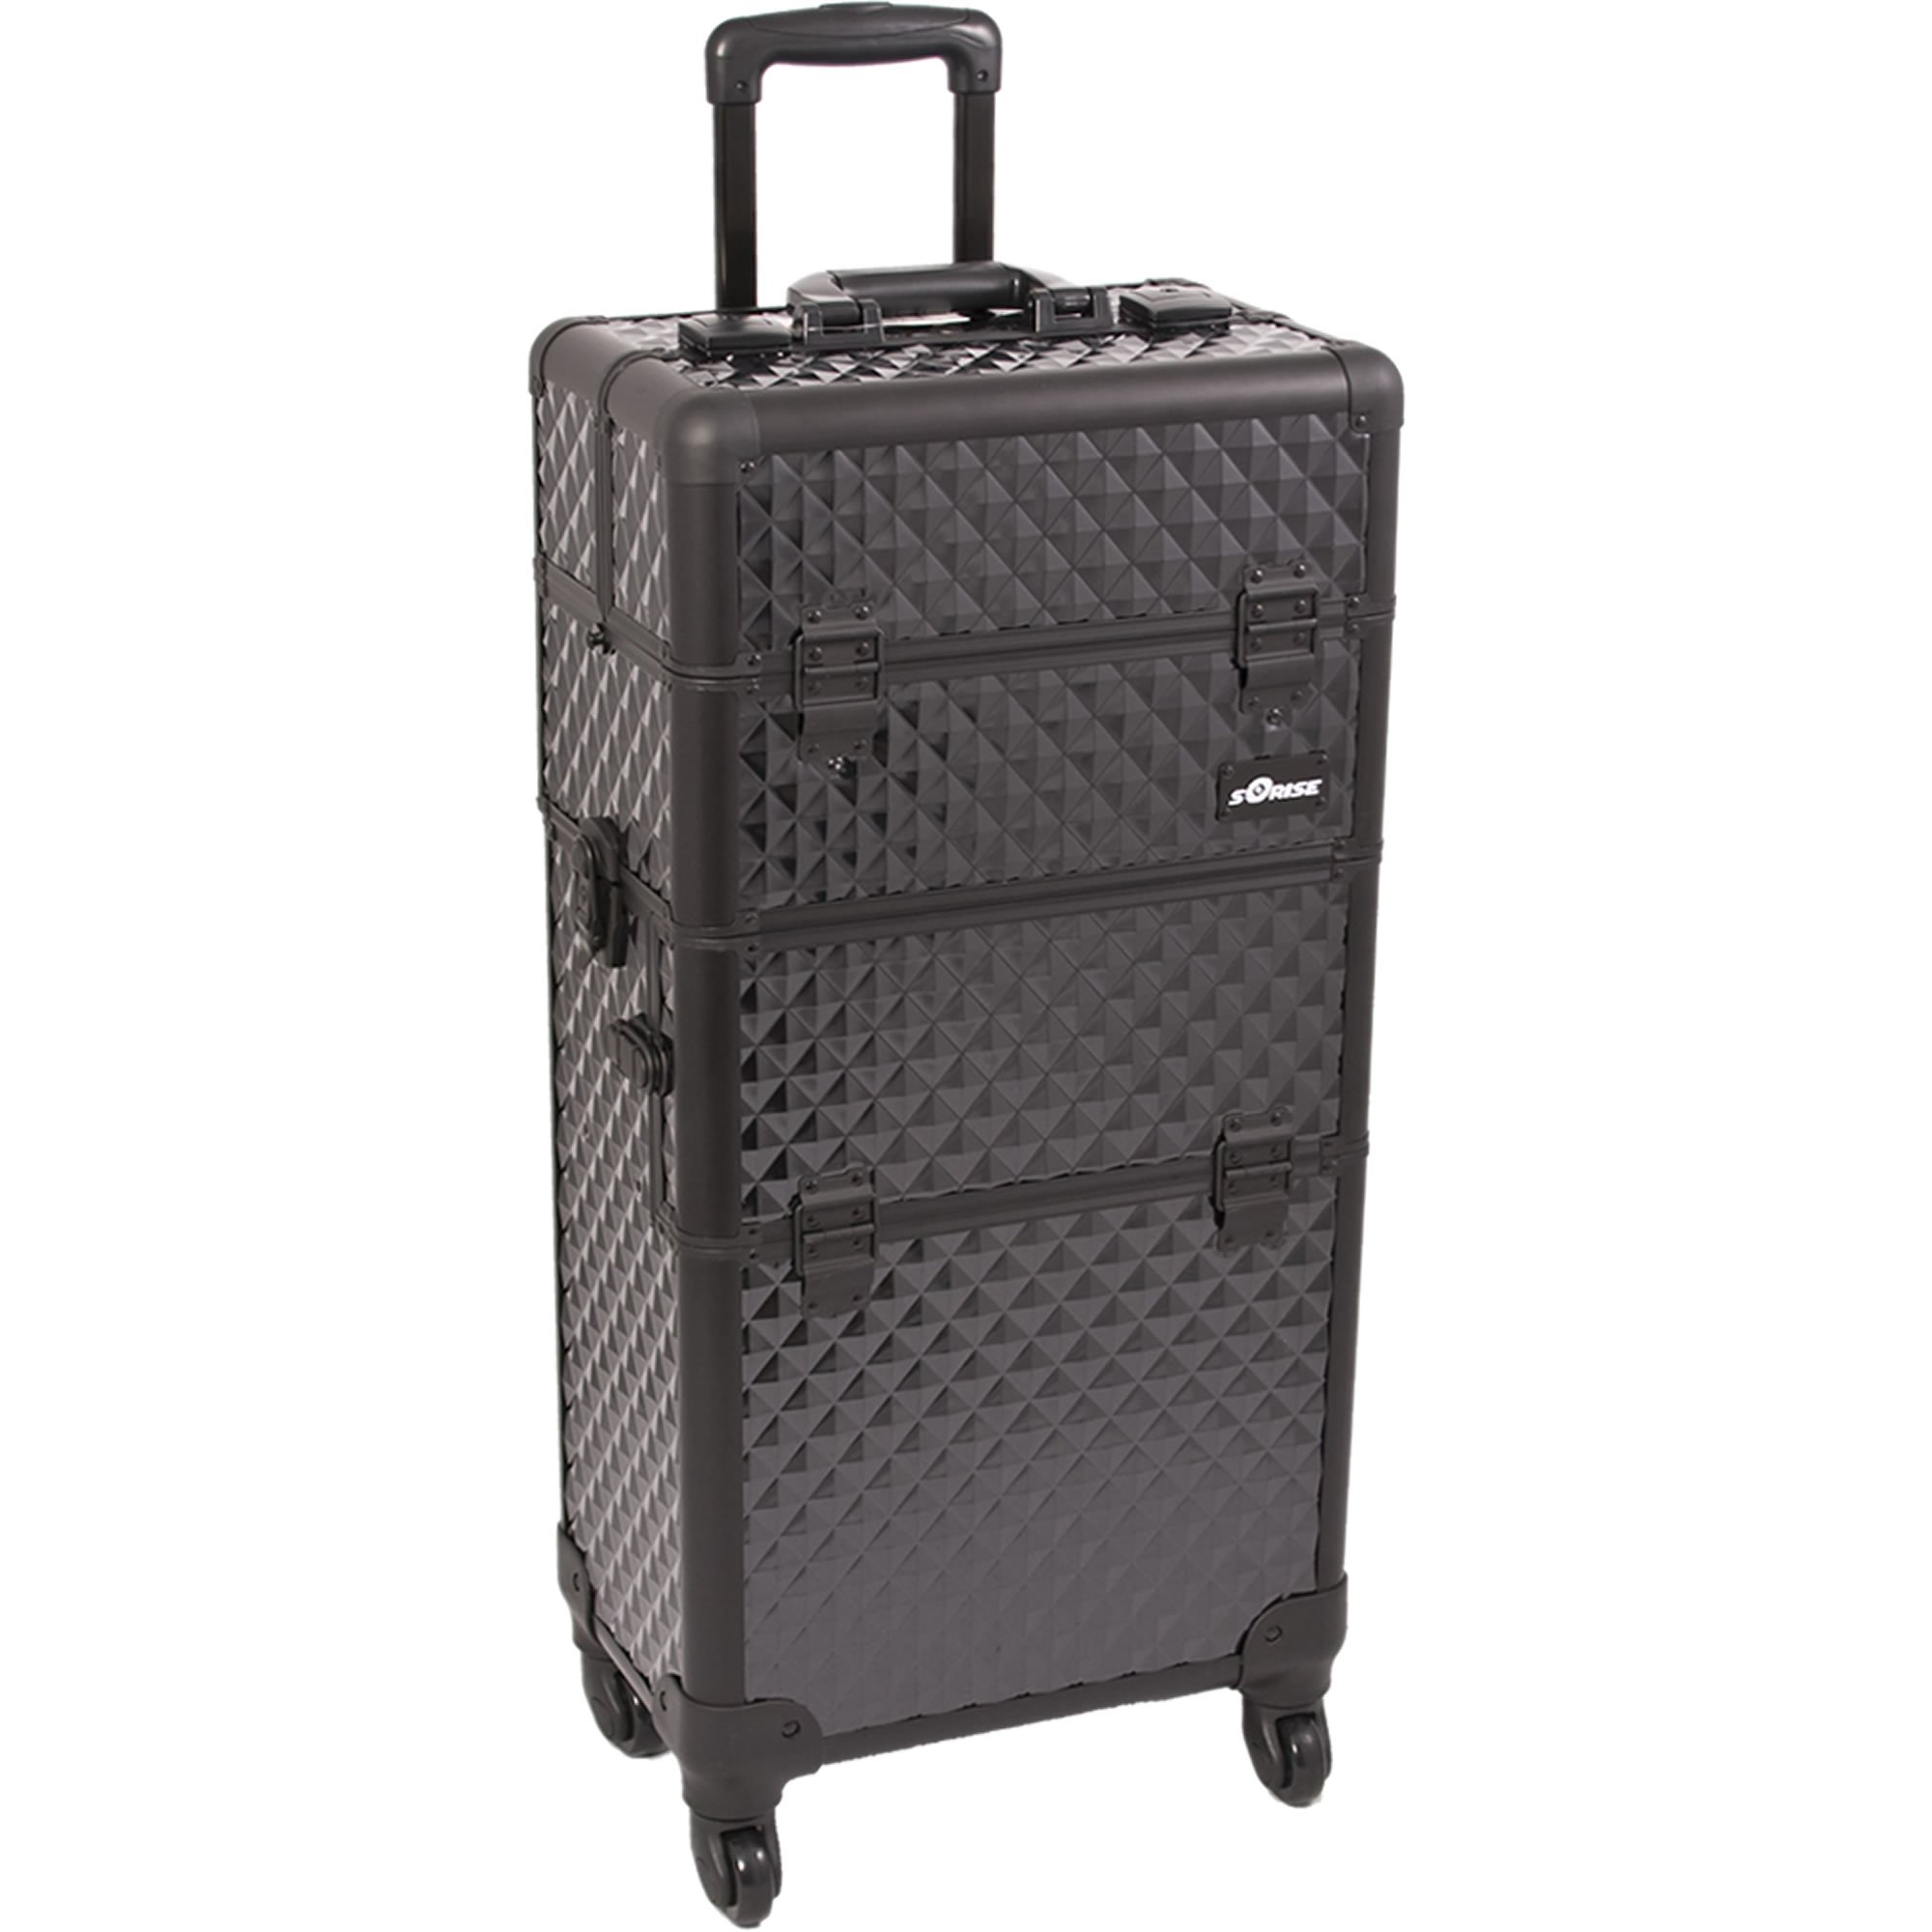 SUNRISE Makeup Case on Wheels I3261 2 in 1 Hair Stylist Organizer, 4 Wheel Spinner, 3 Trays and 1 Removable Tray, Locking with Mirror and Shoulder Strap, Black Diamond